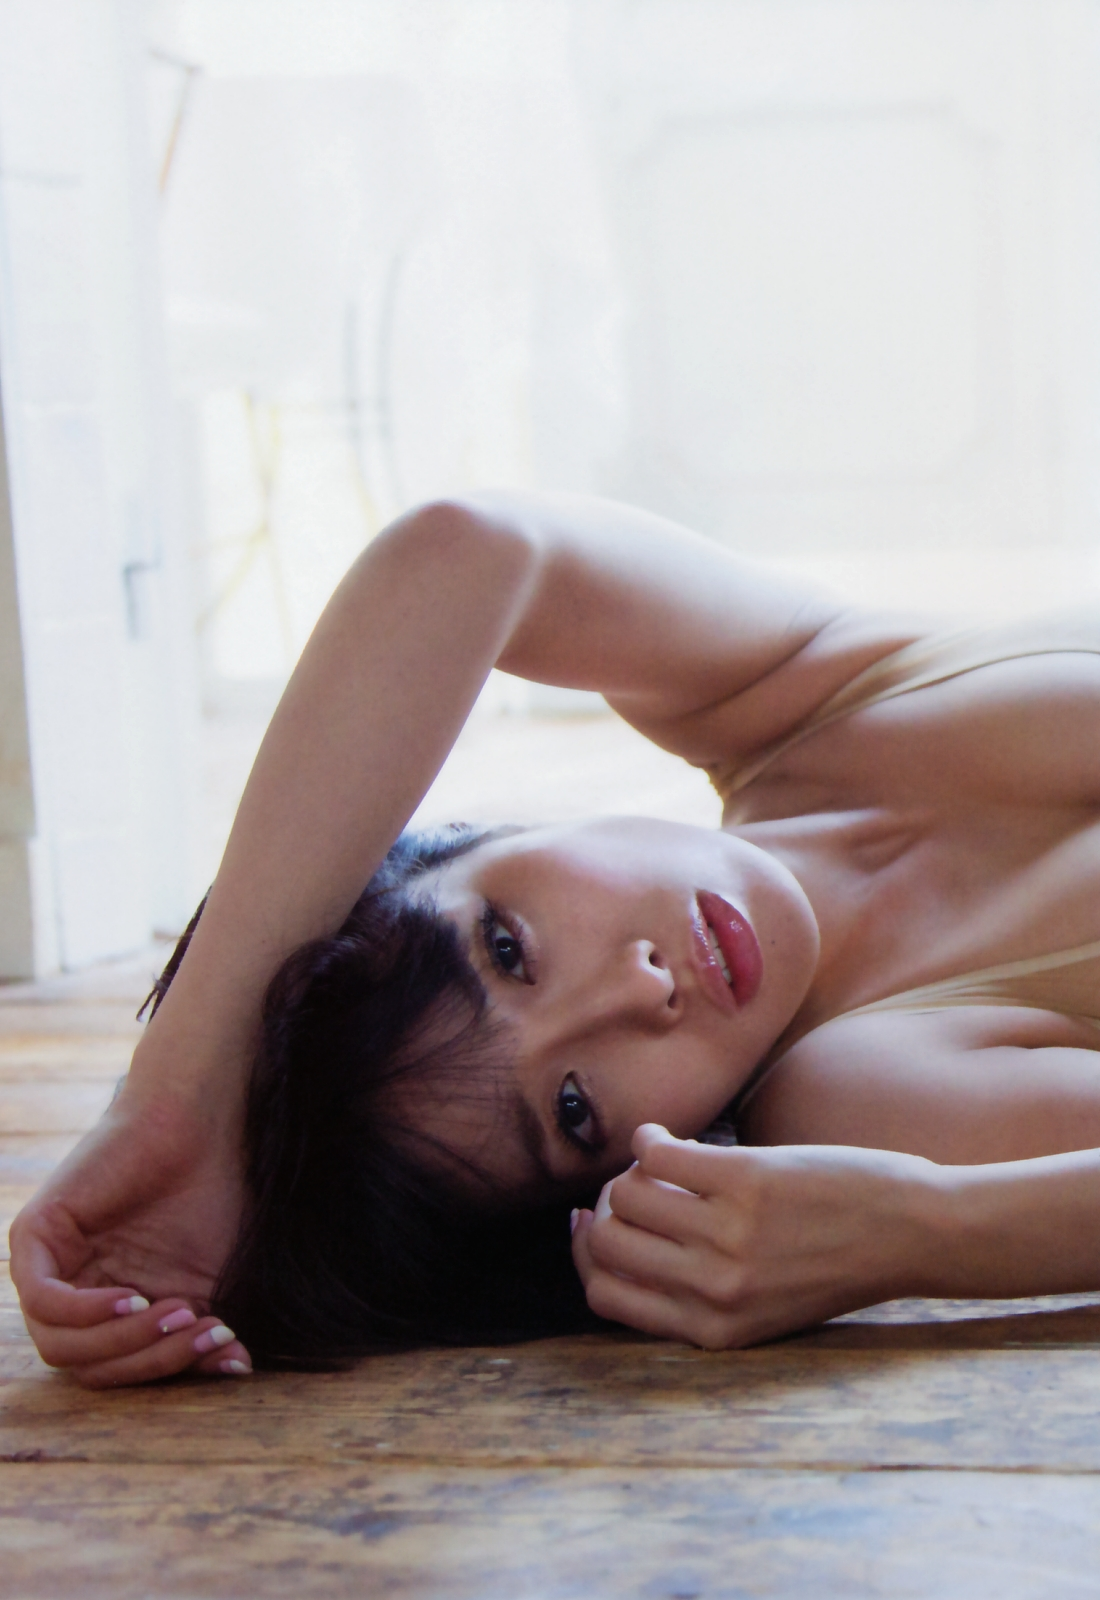 Its soft and makes you want to touch it Anna Konno 031